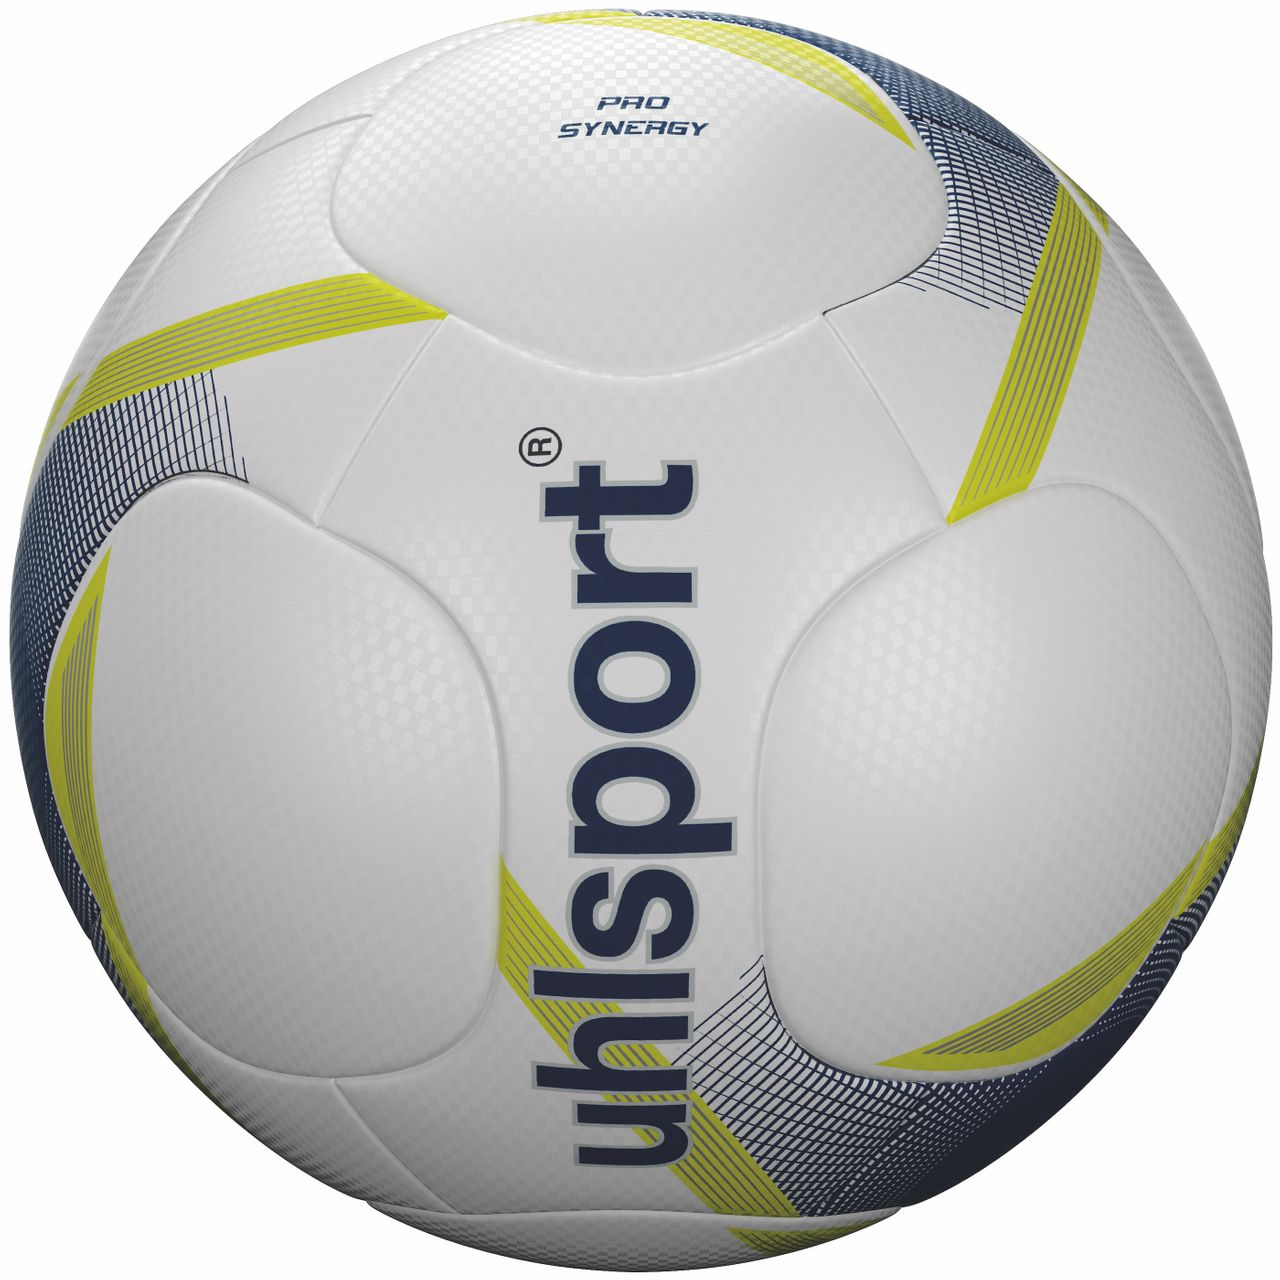 Uhlsport Trainingsball PRO SYNERGY